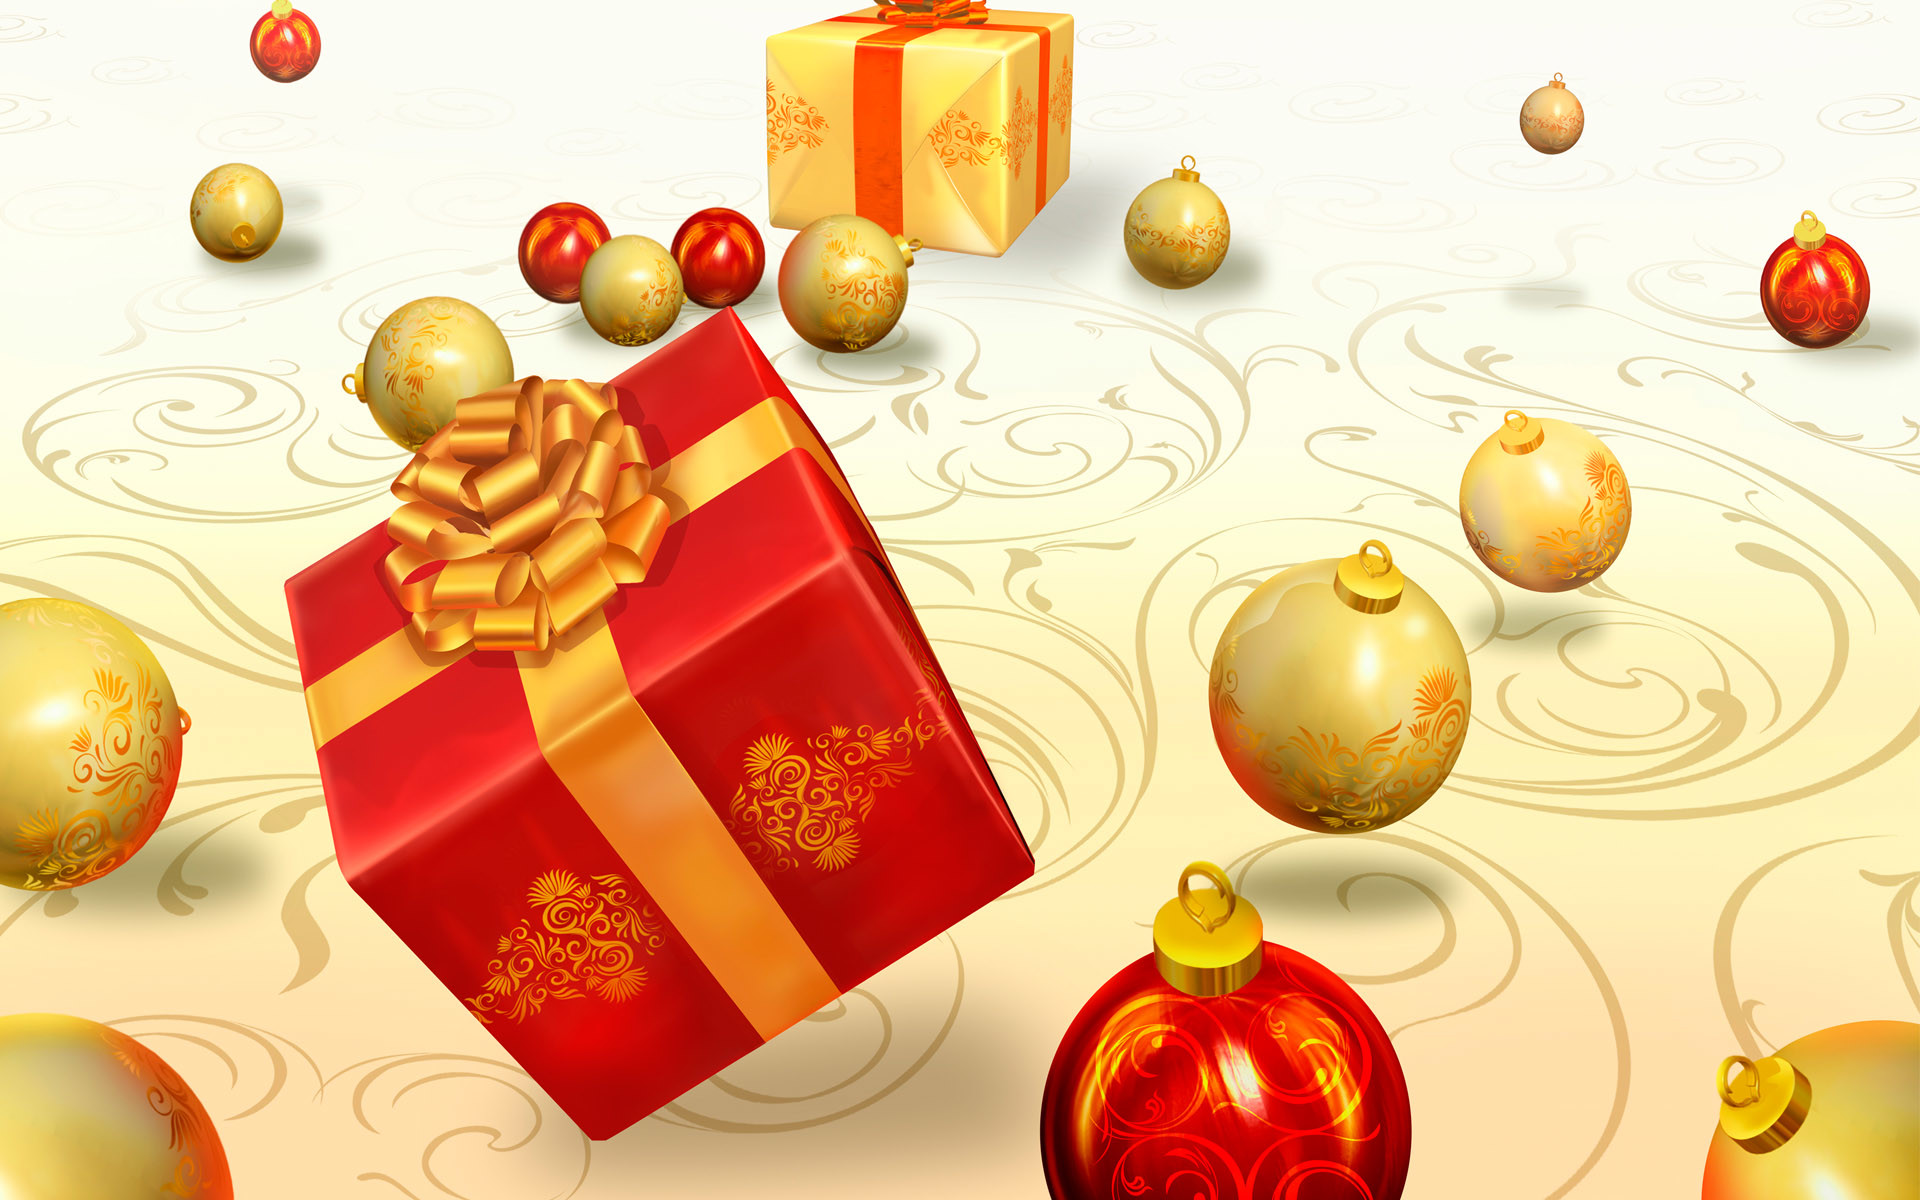 Res: 1920x1200, Christmas Gifts Wallpaper